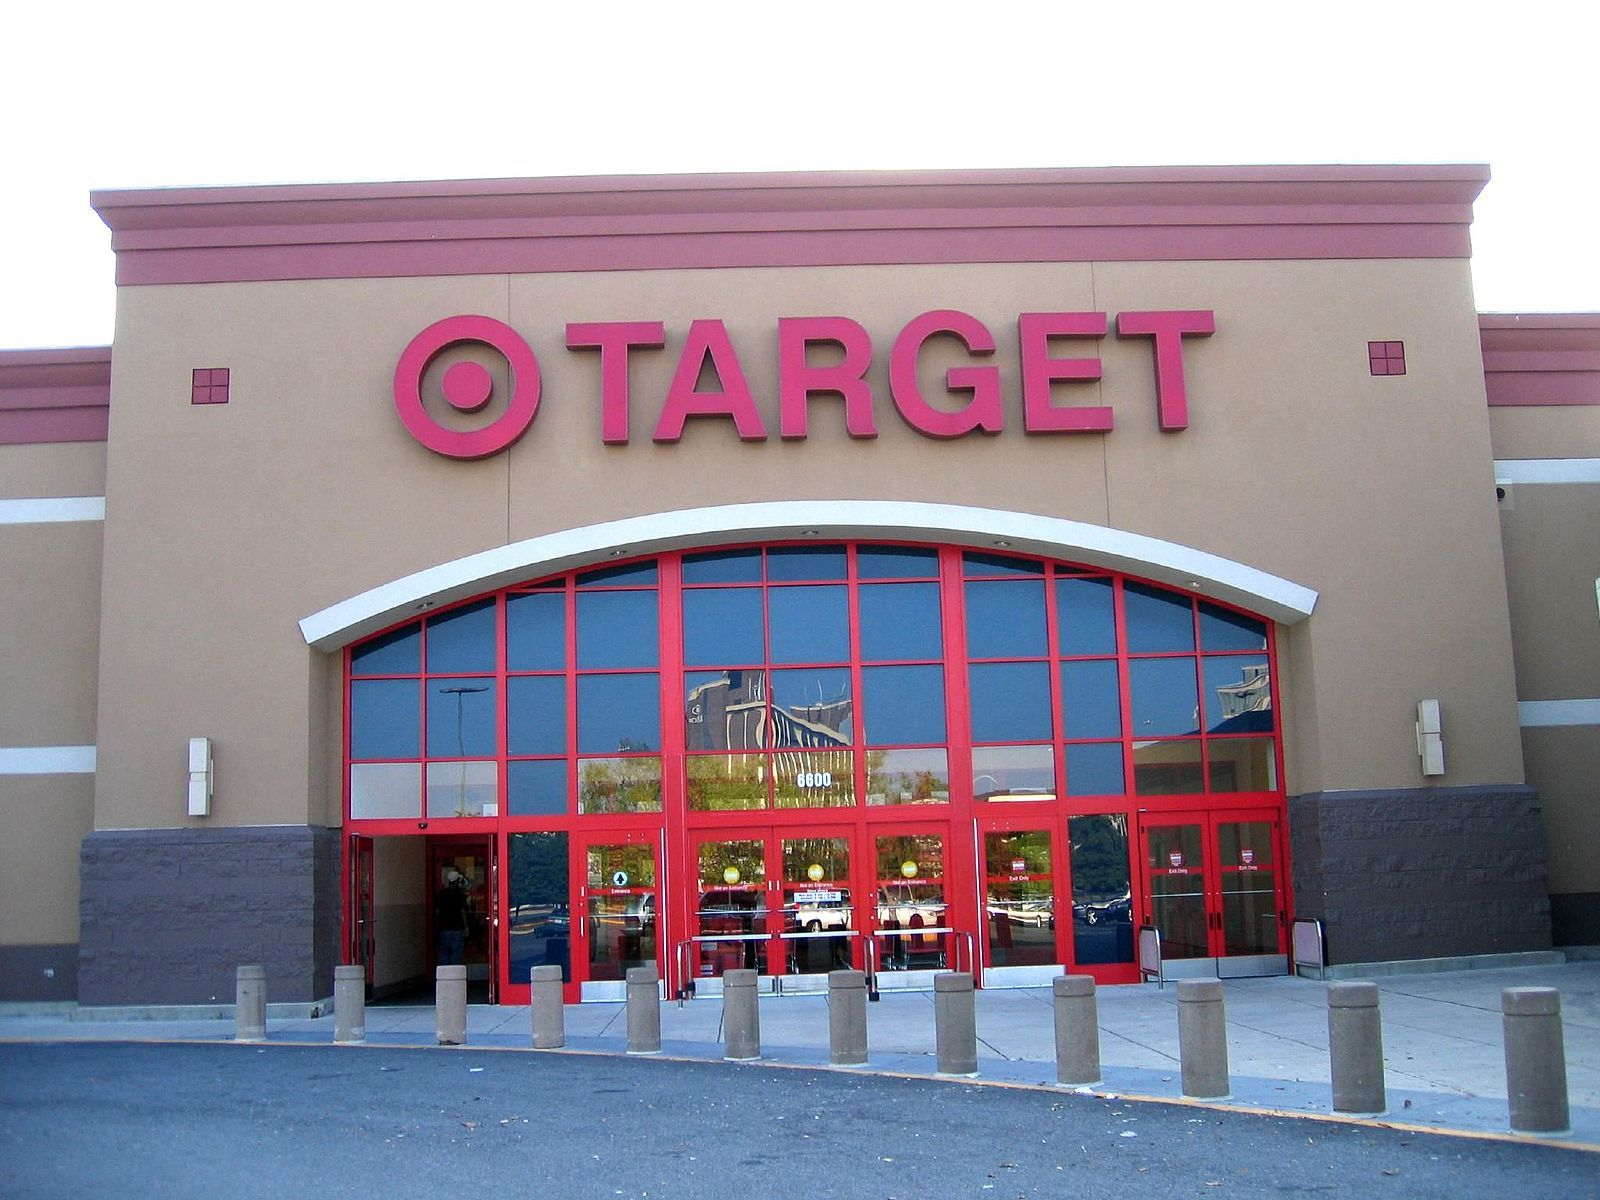 Target's two stores on Chicago's South Side have $750,000 property tax bills.